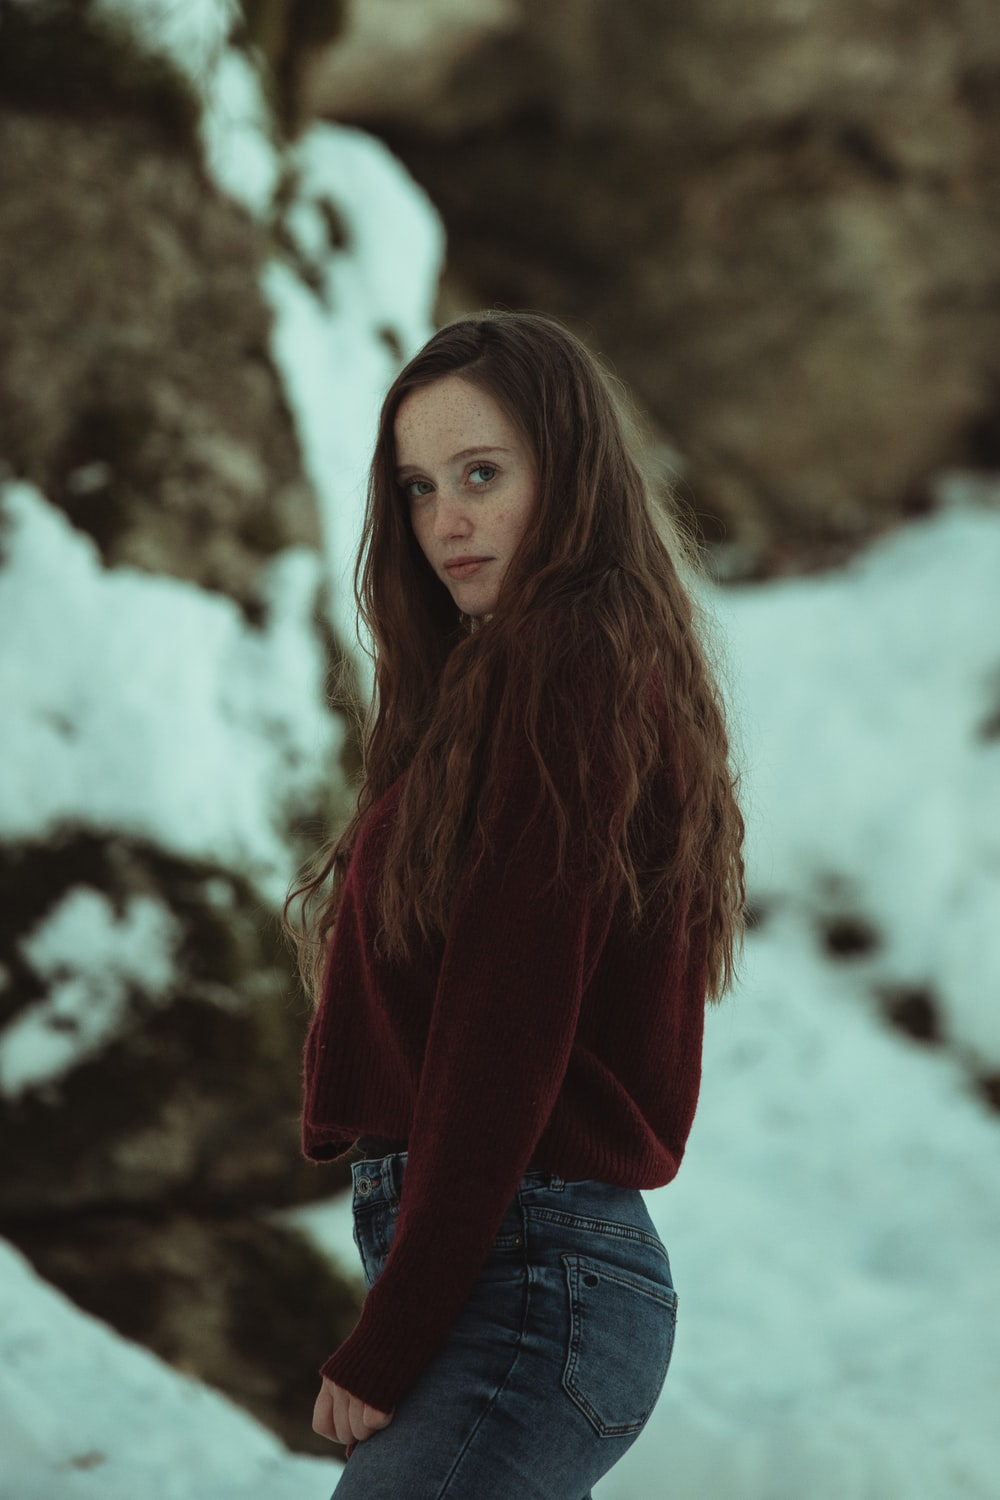 woman in red long sleeve shirt and blue denim jeans standing on snow covered ground during